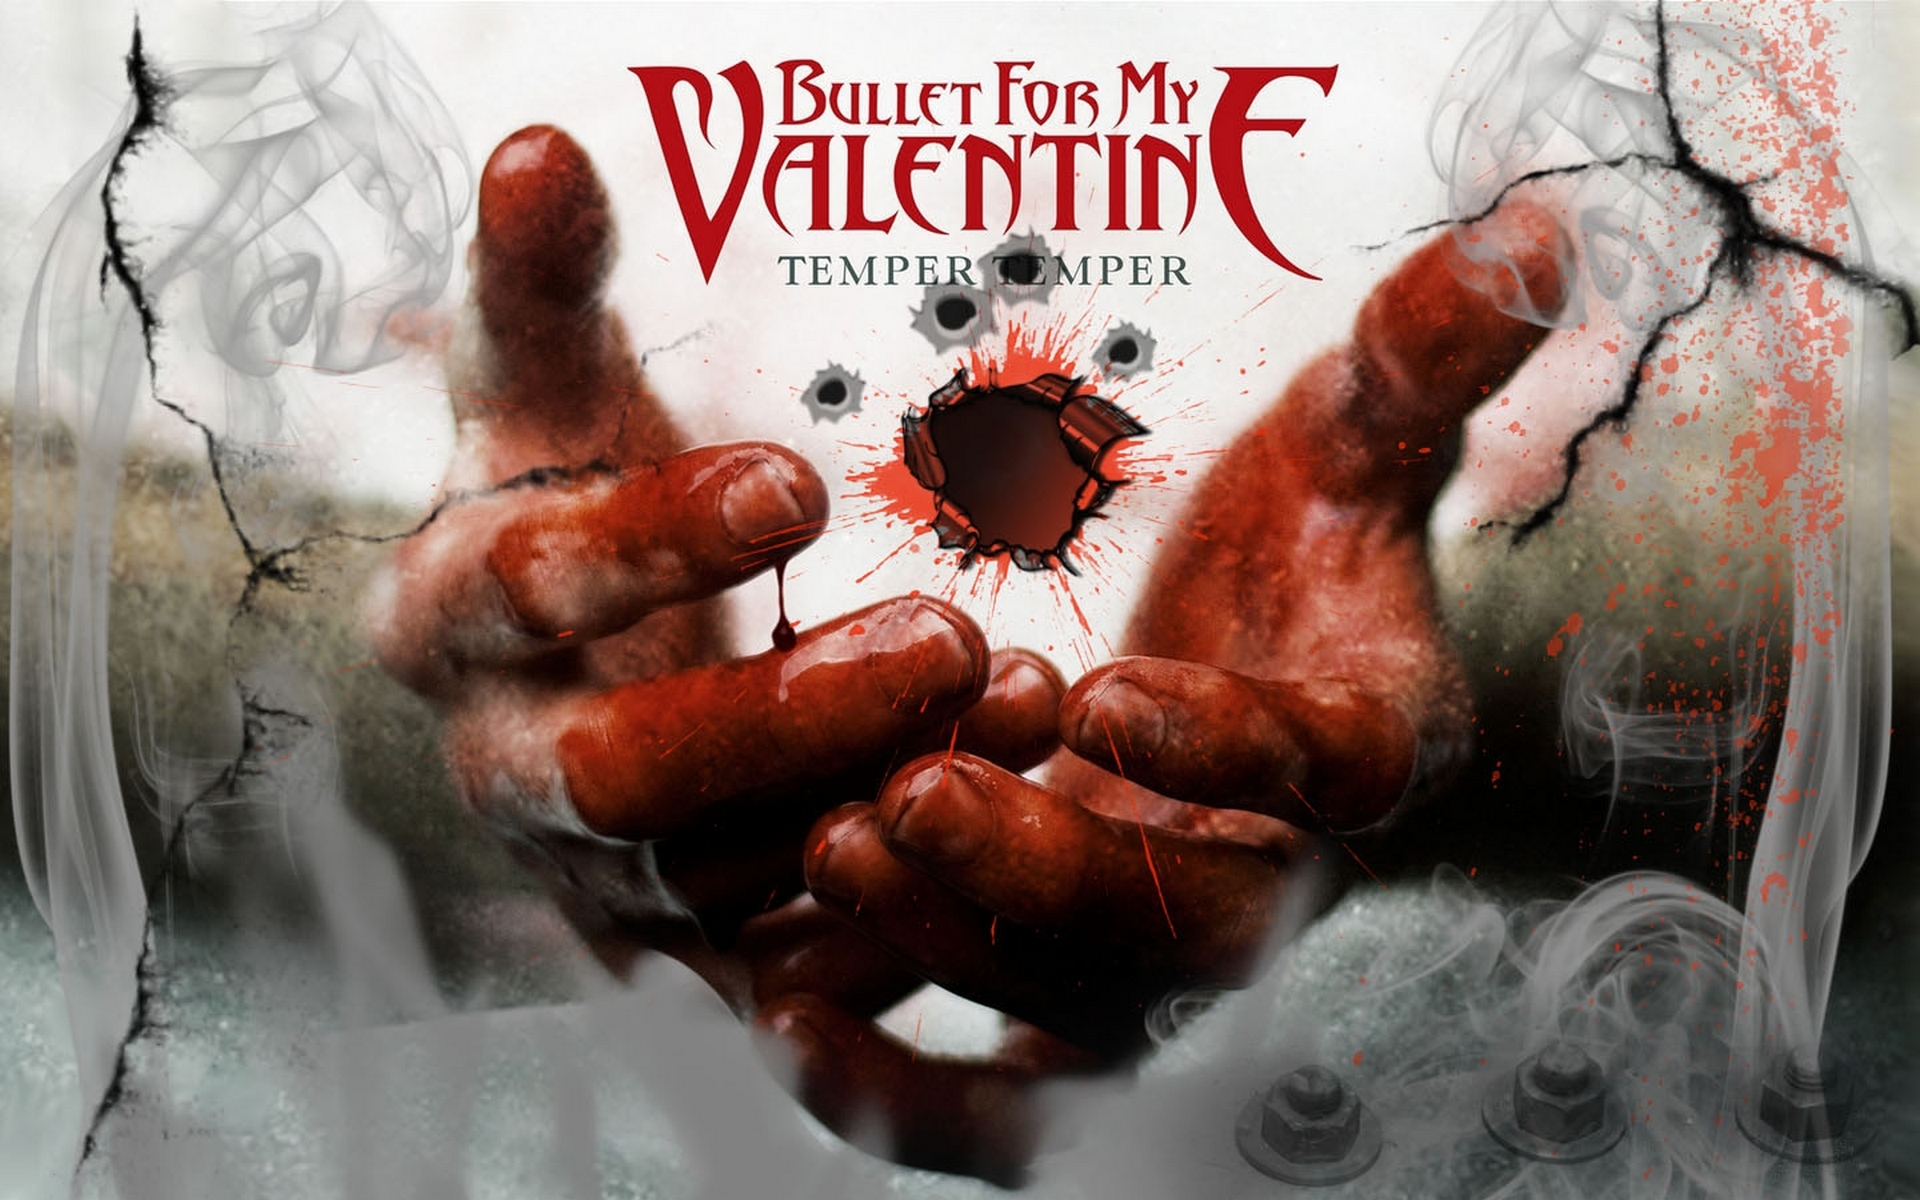 Bullet for my valentine album wallpapers 1920x1200 1154739